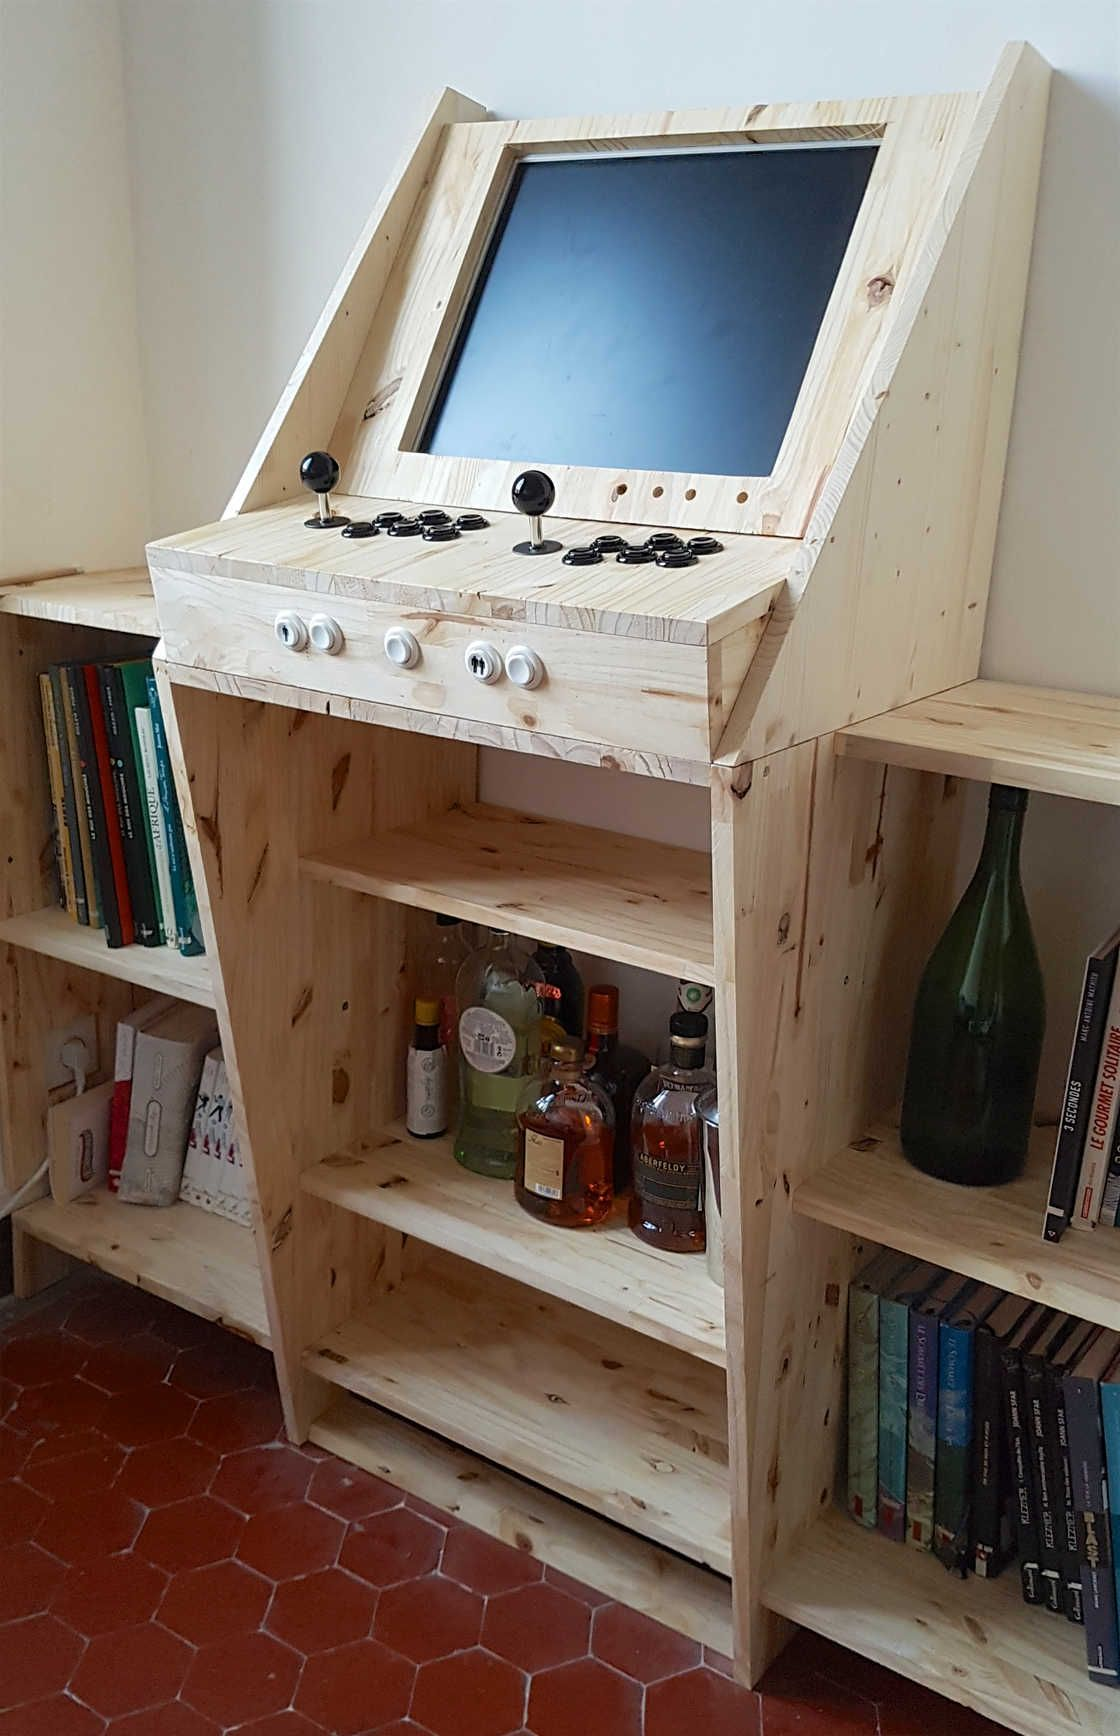 Fabulous We built an Arcade Machine | Arcade, Raspberry and Gaming QJ91